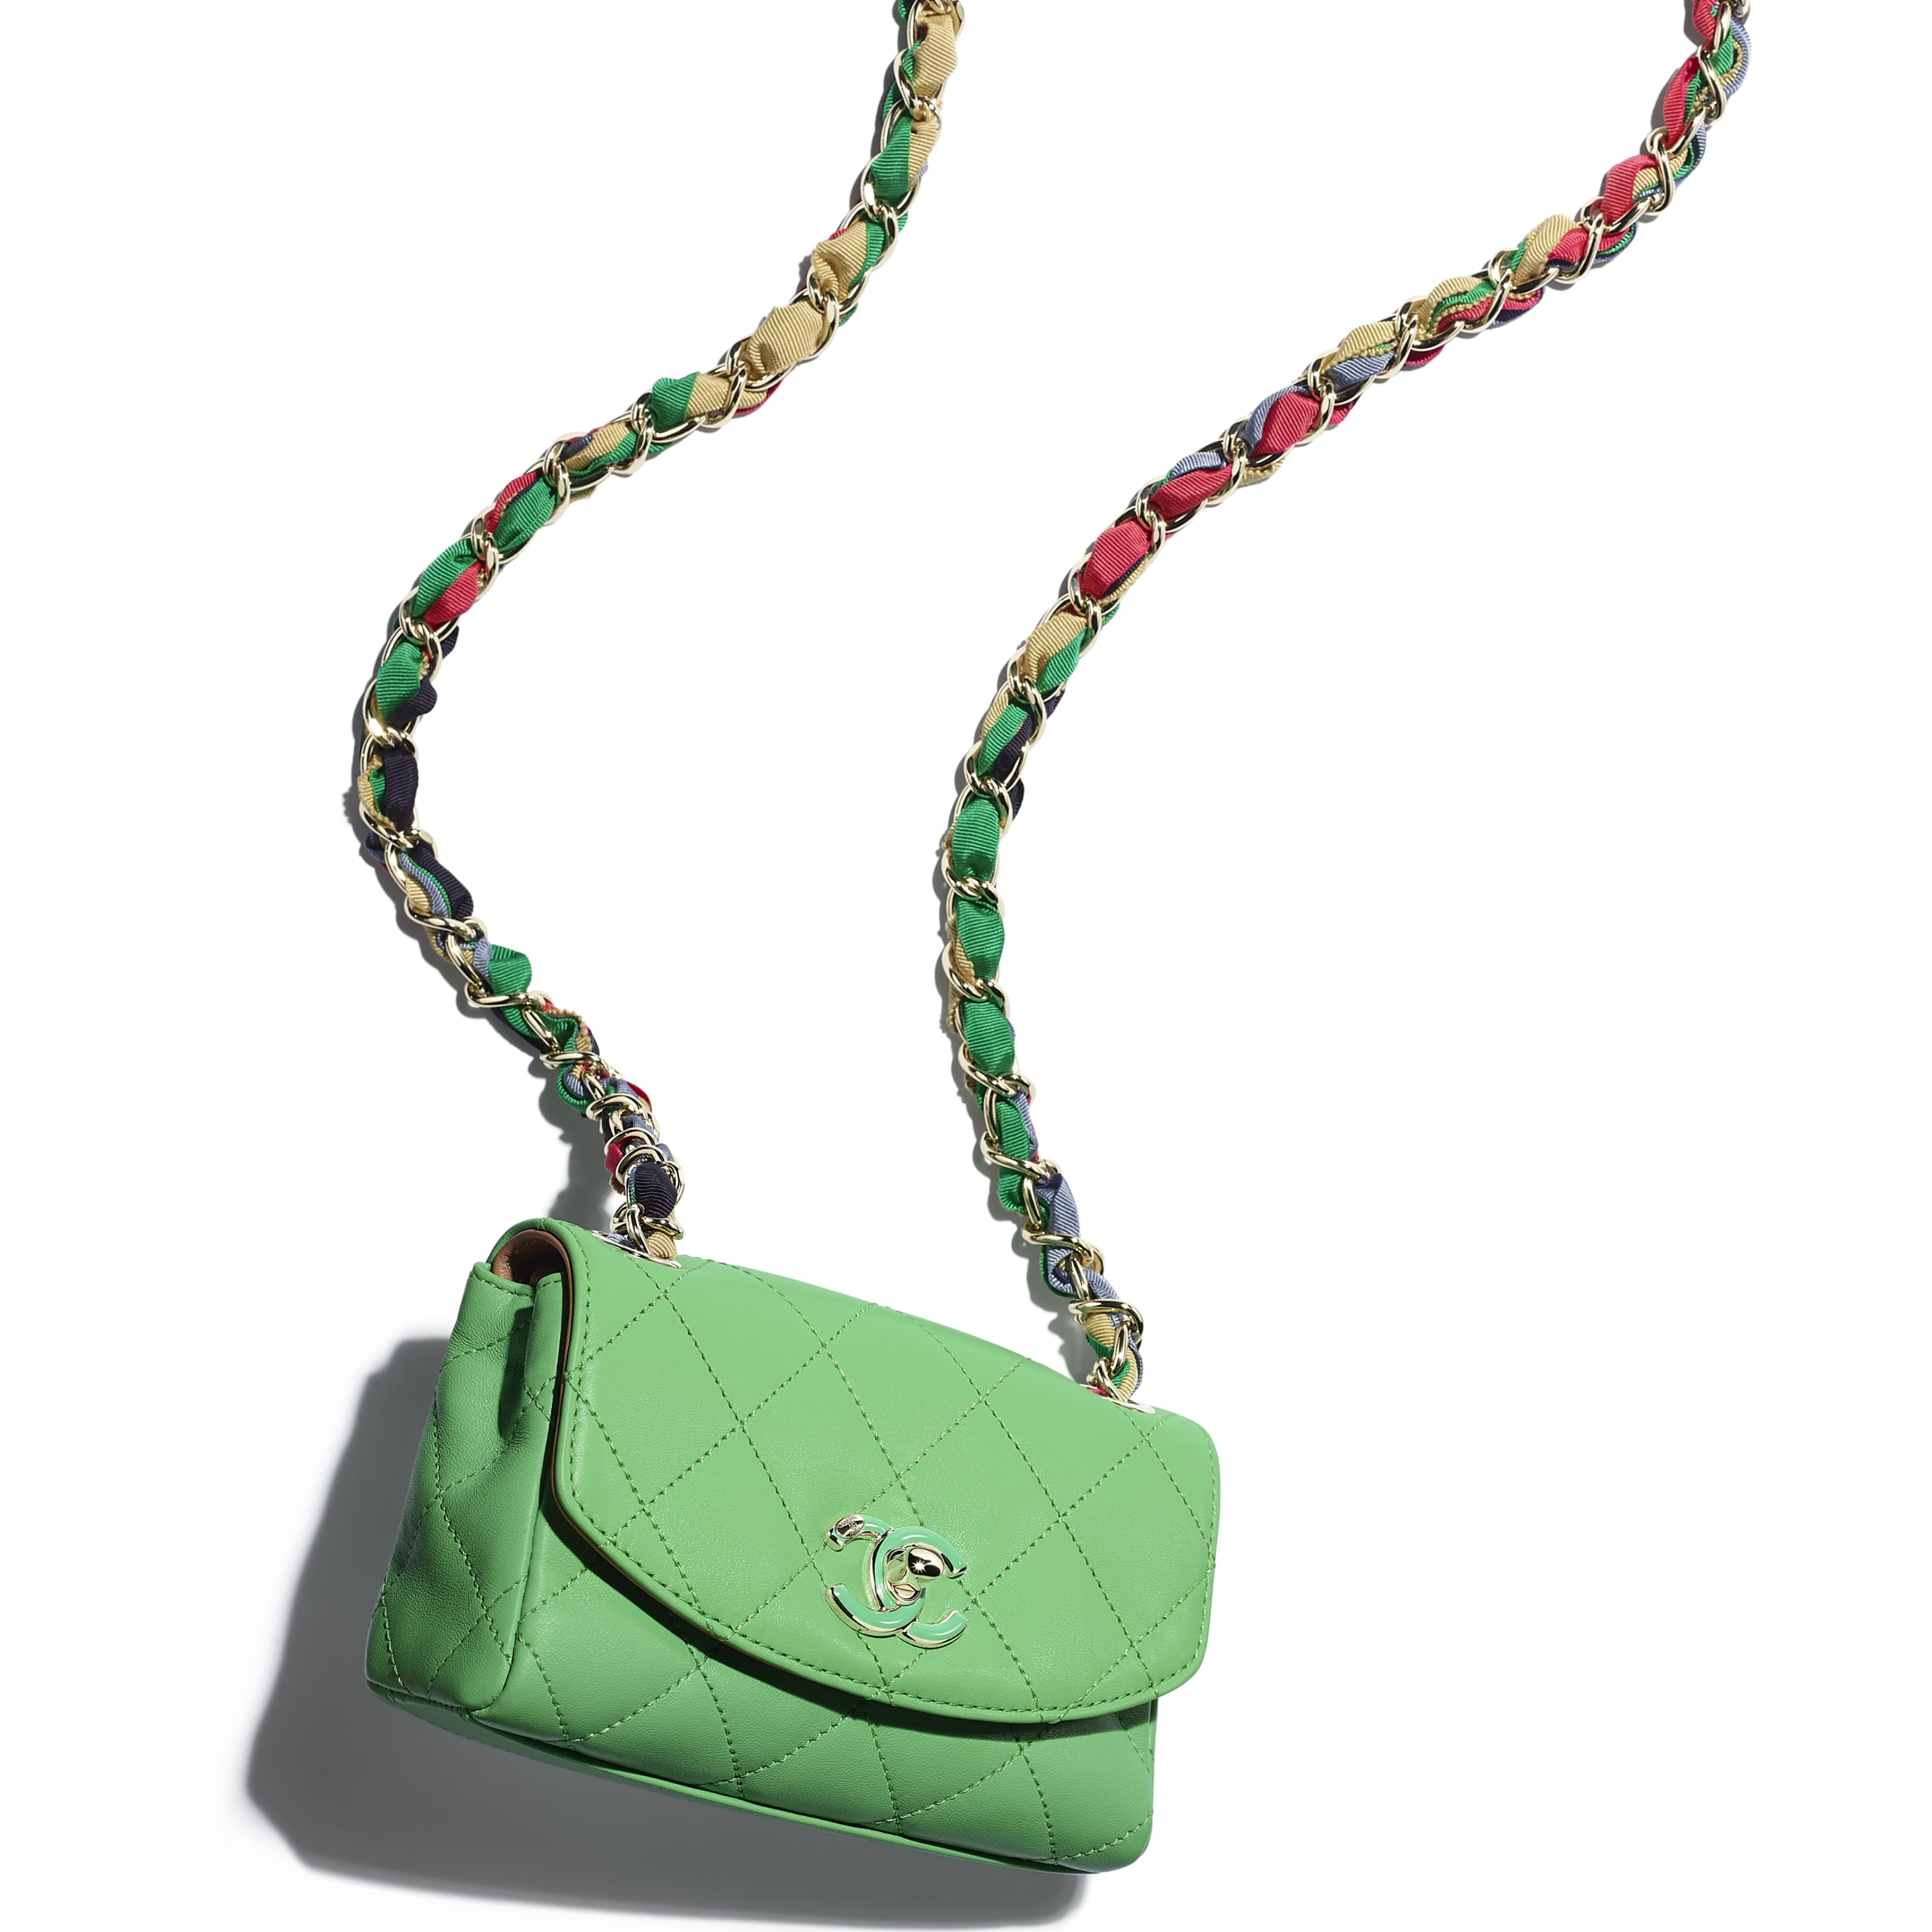 Small Flap Bag - Green - Lambskin, Mixed Fibers & Gold-Tone Metal - CHANEL - Extra view - see standard sized version